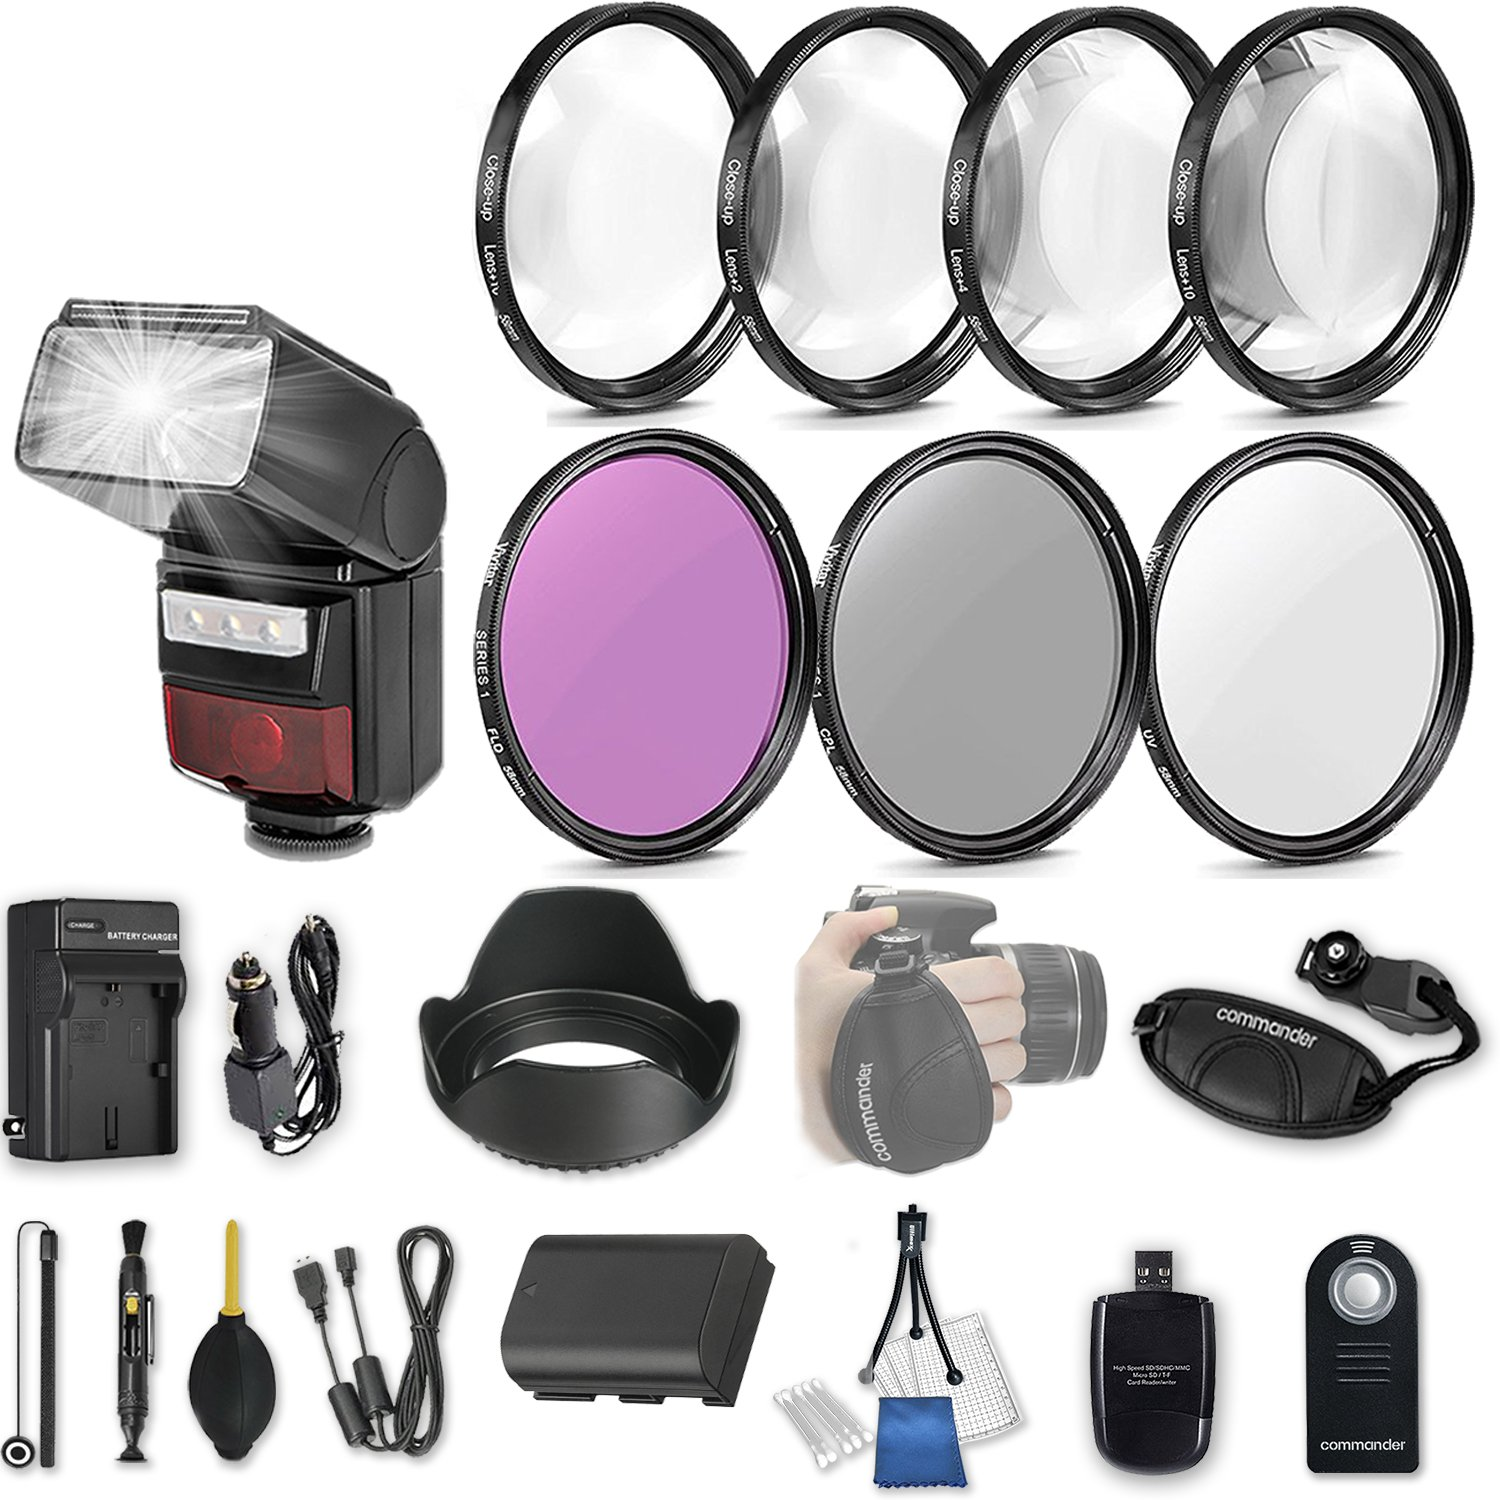 58mm 21 Pc Accessory Kit for Canon EOS Rebel 70D, 80D DSLRs with LED-Flash, UV CPL FLD Filters, & 4 Piece Macro Close-Up Set, Battery, and More